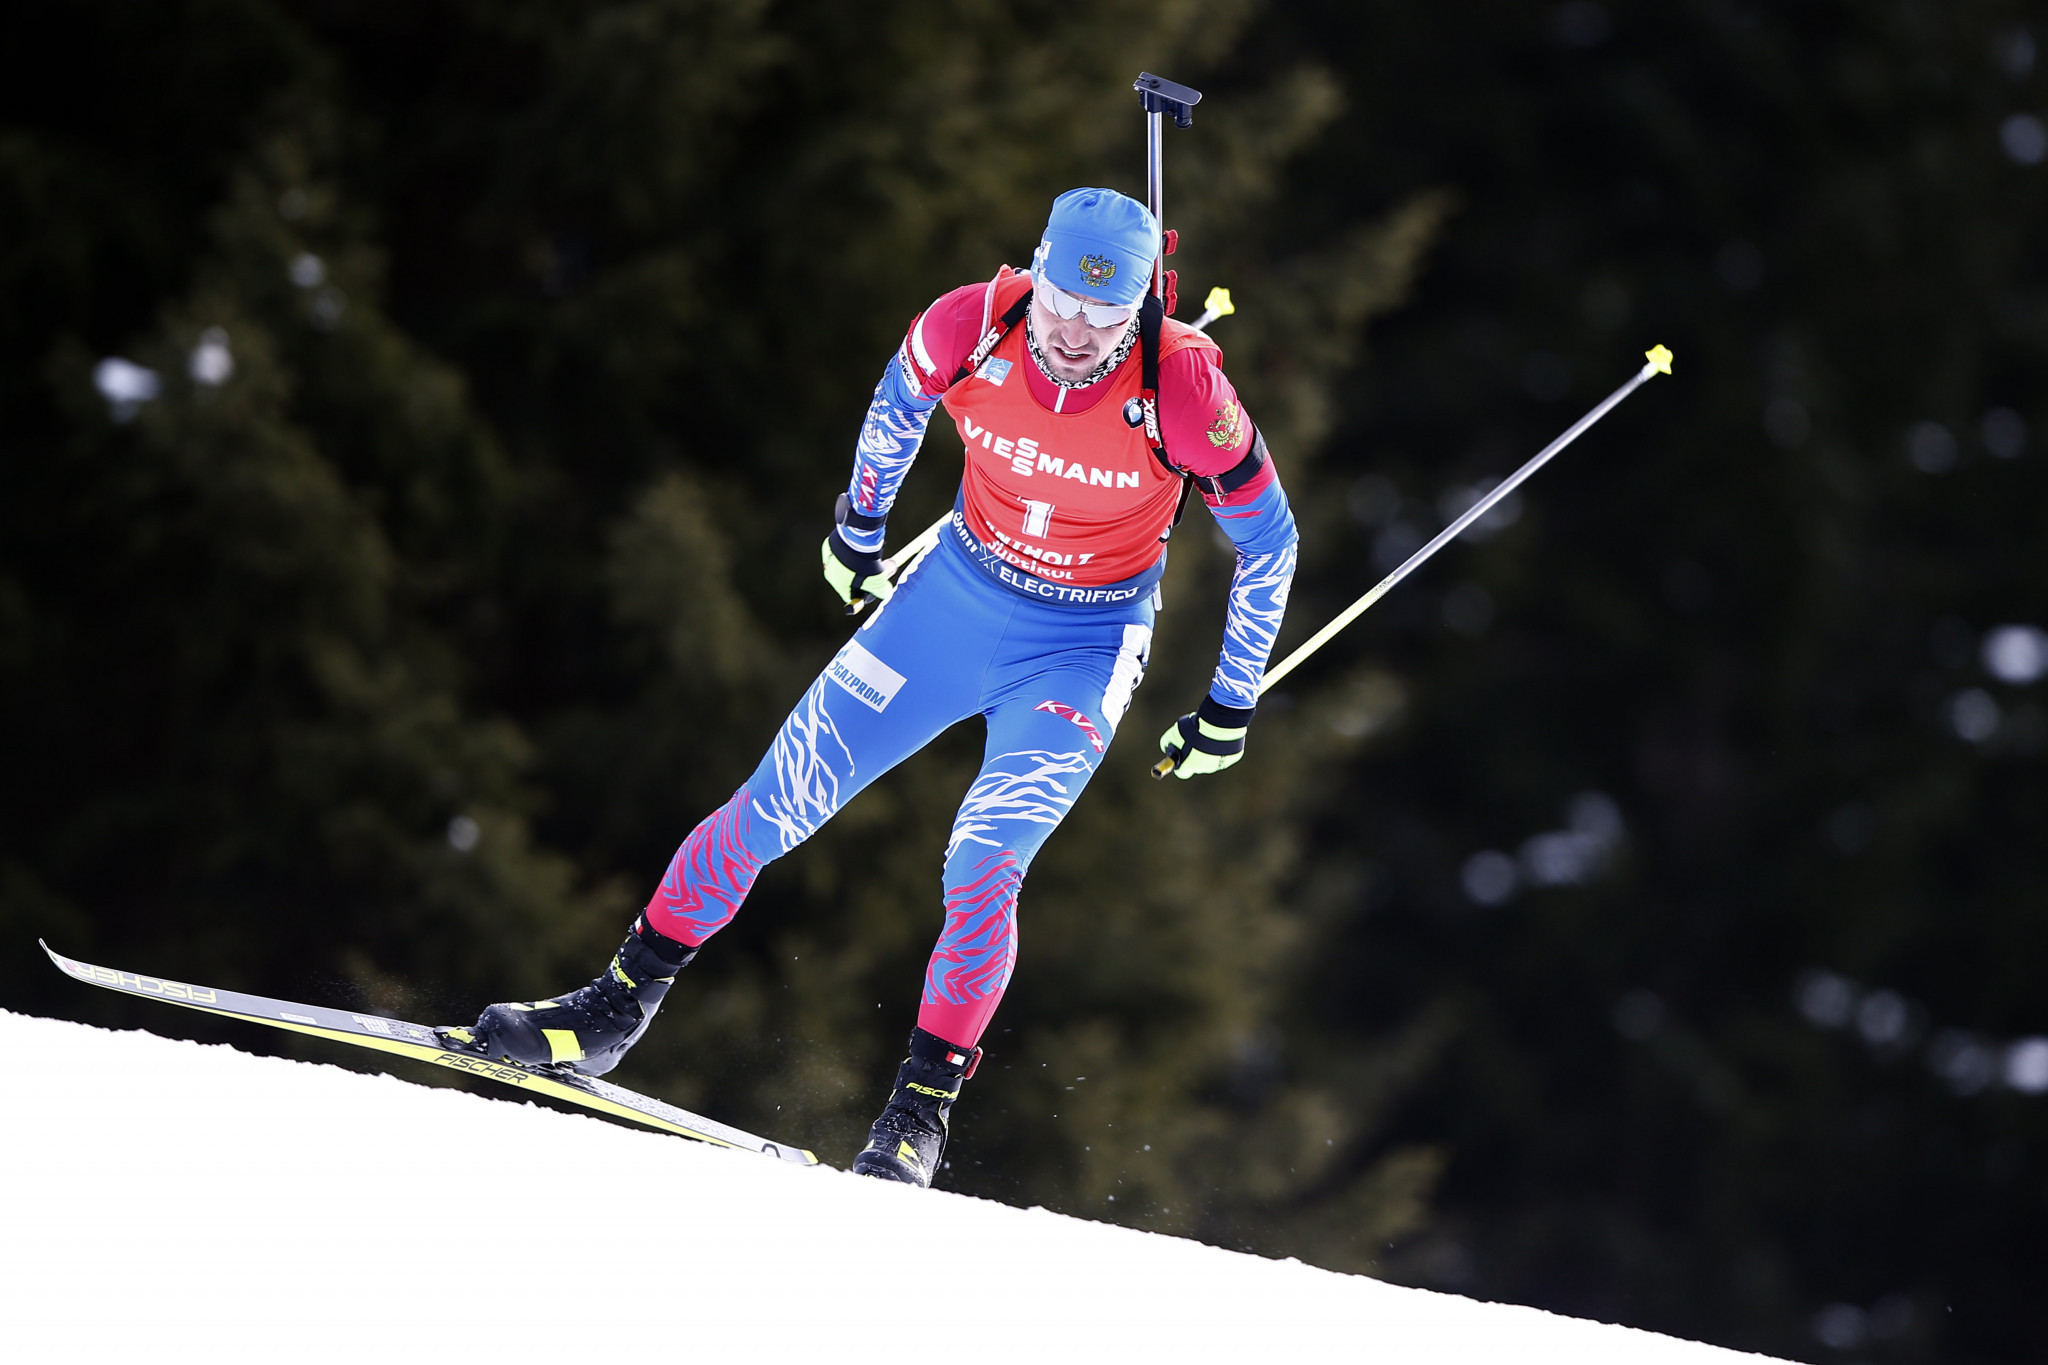 Alexander Loginov and his coach were targeted in the raid at the Biathlon World Championships ©Getty Images